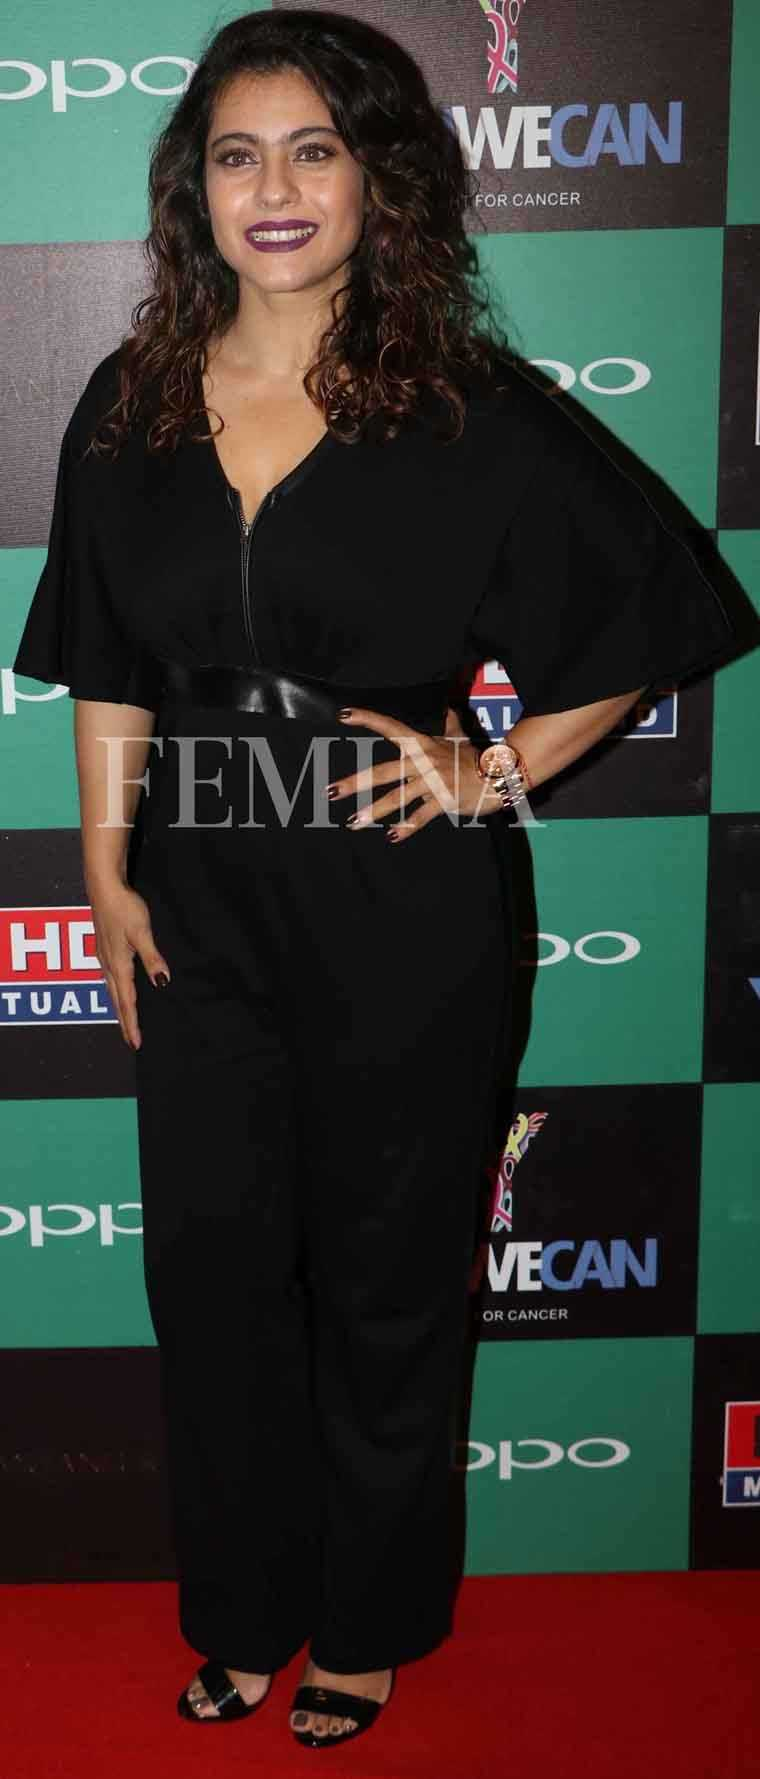 KAJOL: A sleek black jumpsuit is a chic alternative to your LBD. Dress it up with some big baubles or do like Kajol and add a bold lip colour instead.